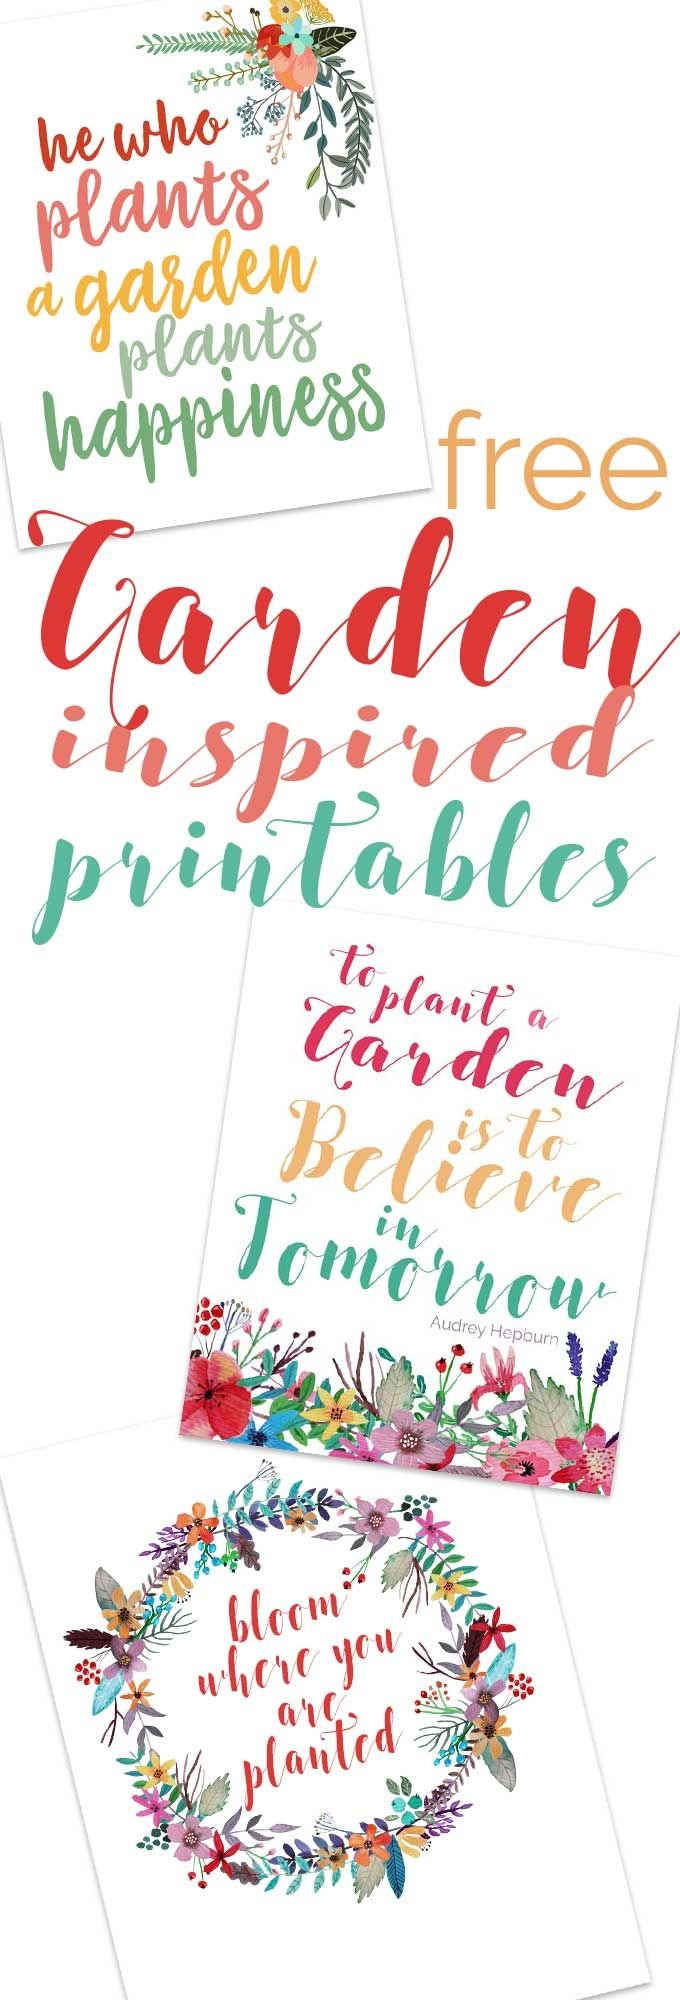 Free Garden Quote Printable Art - Easy DIY Decorating Idea